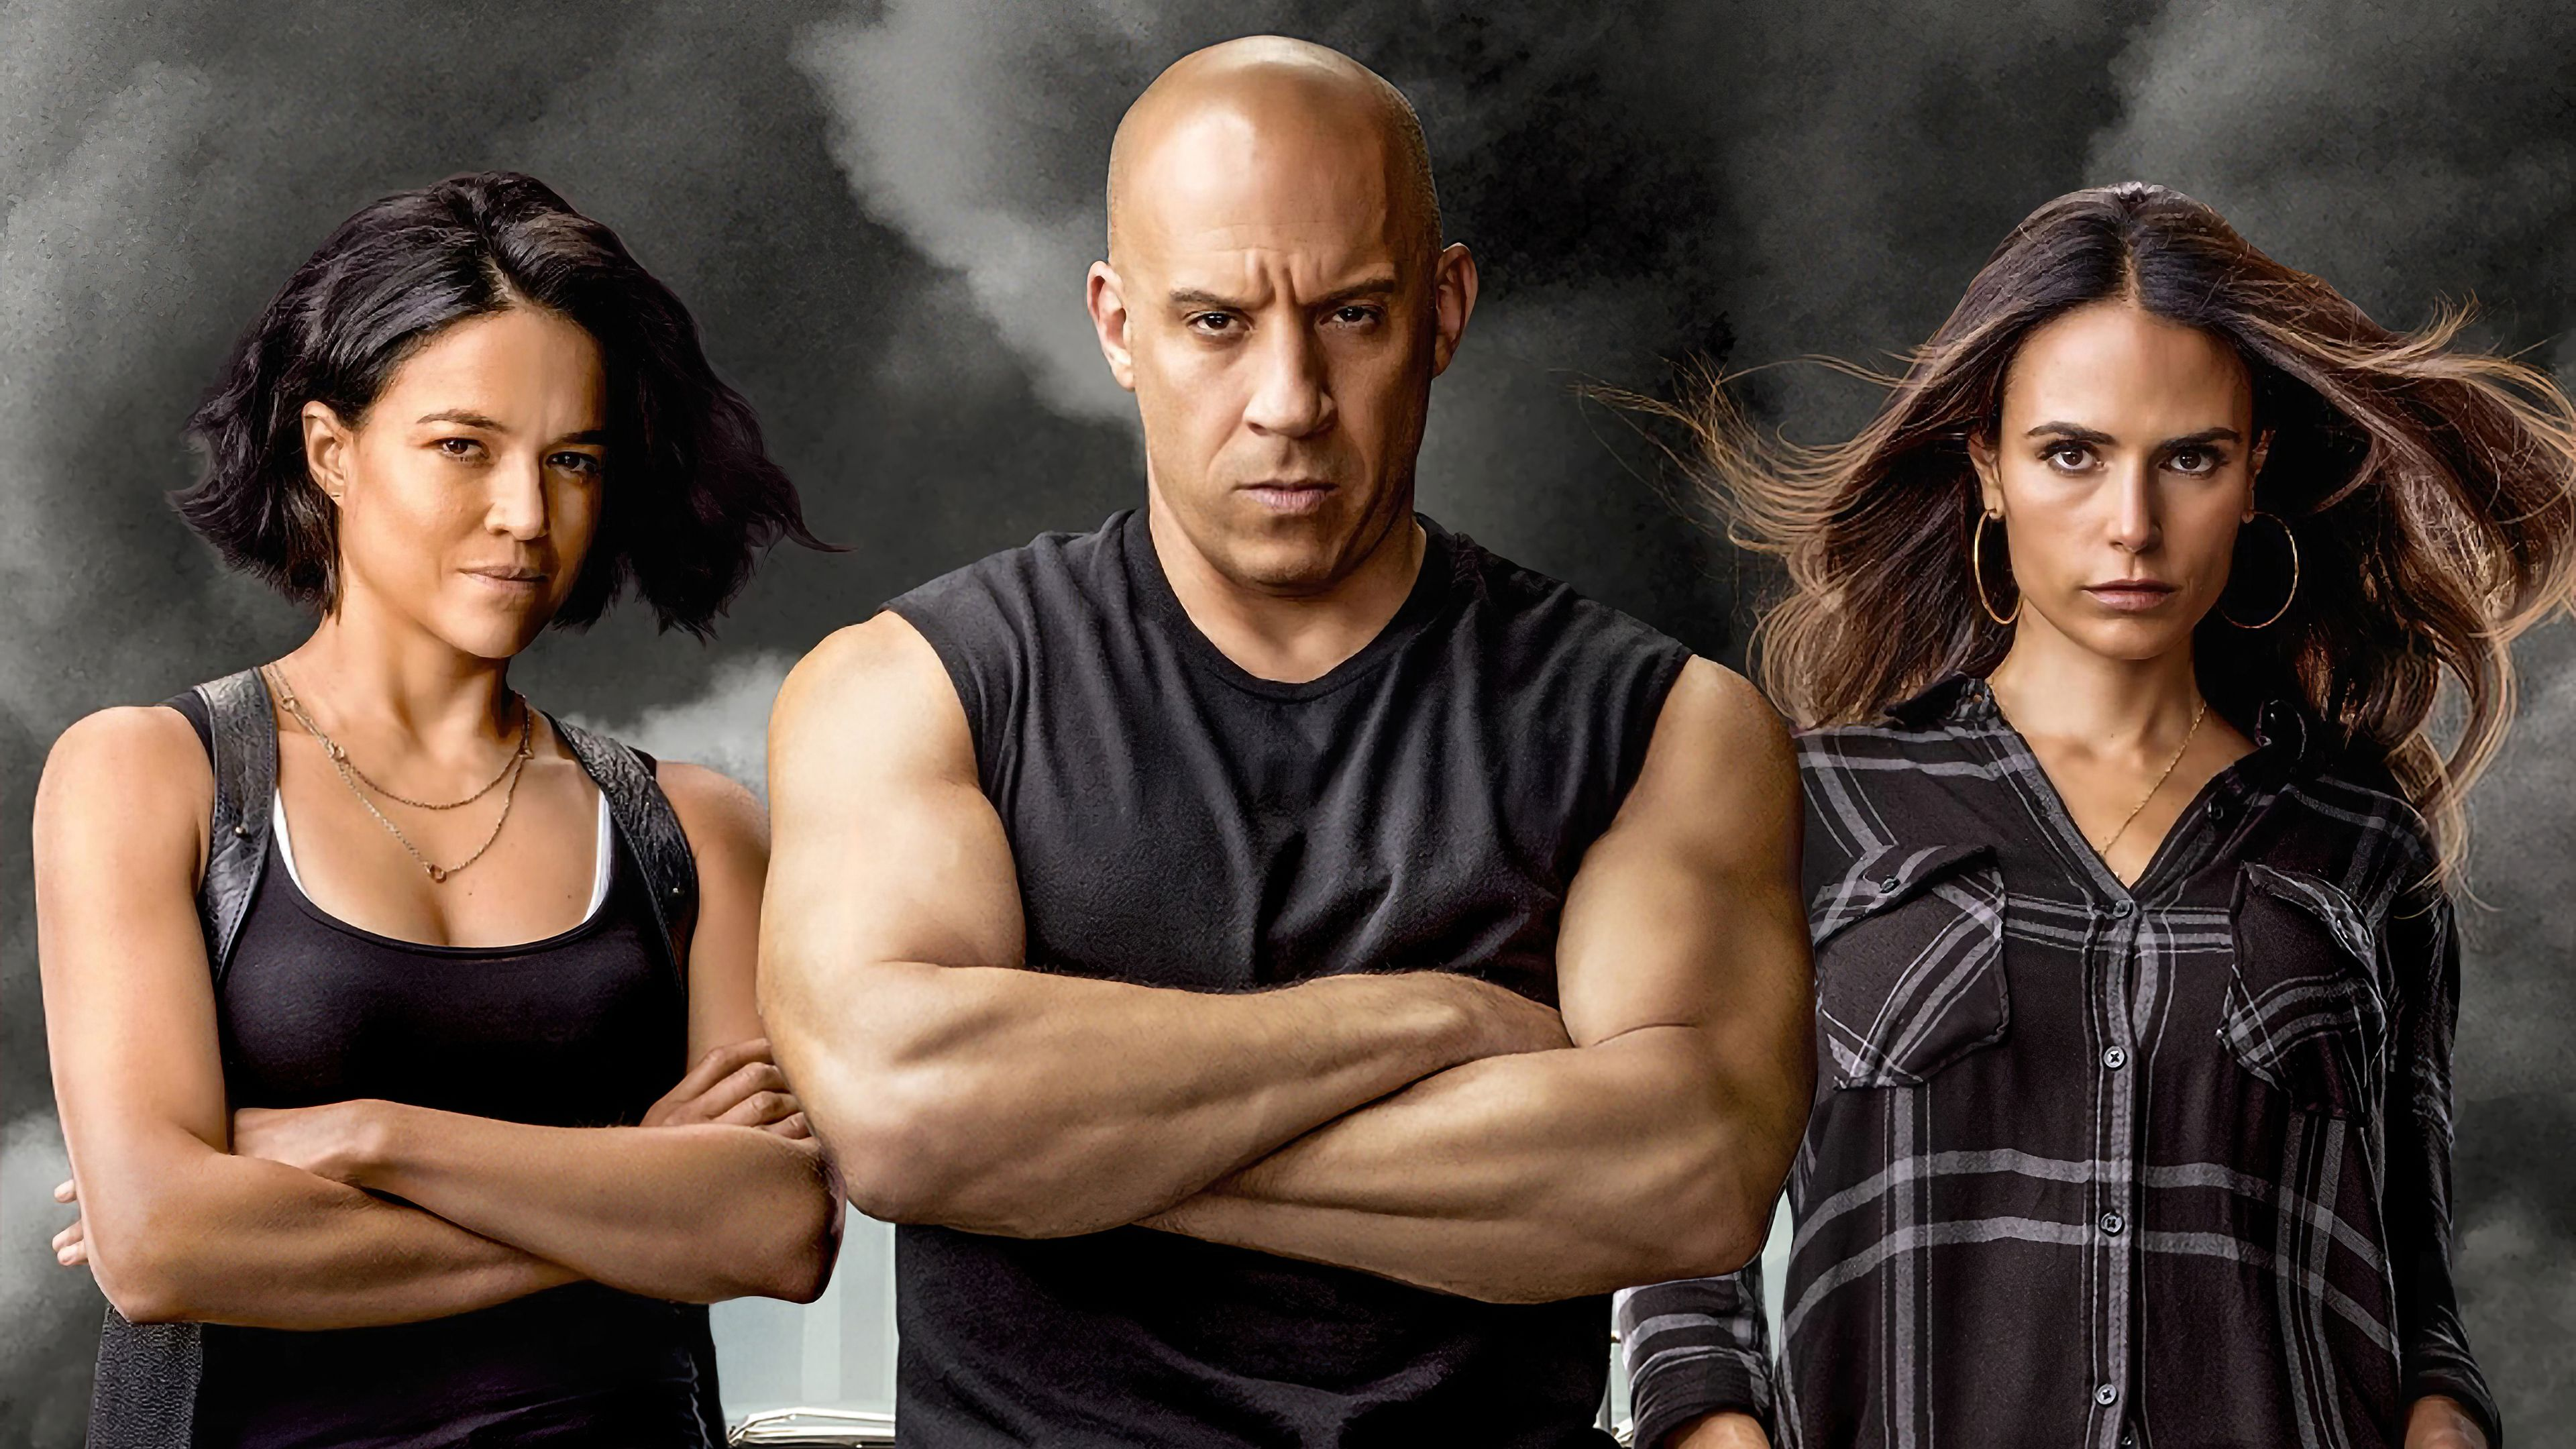 Fast And Furious 9 The Fast Saga 2021 Fast And Furious Go To The Cinema Bond Films